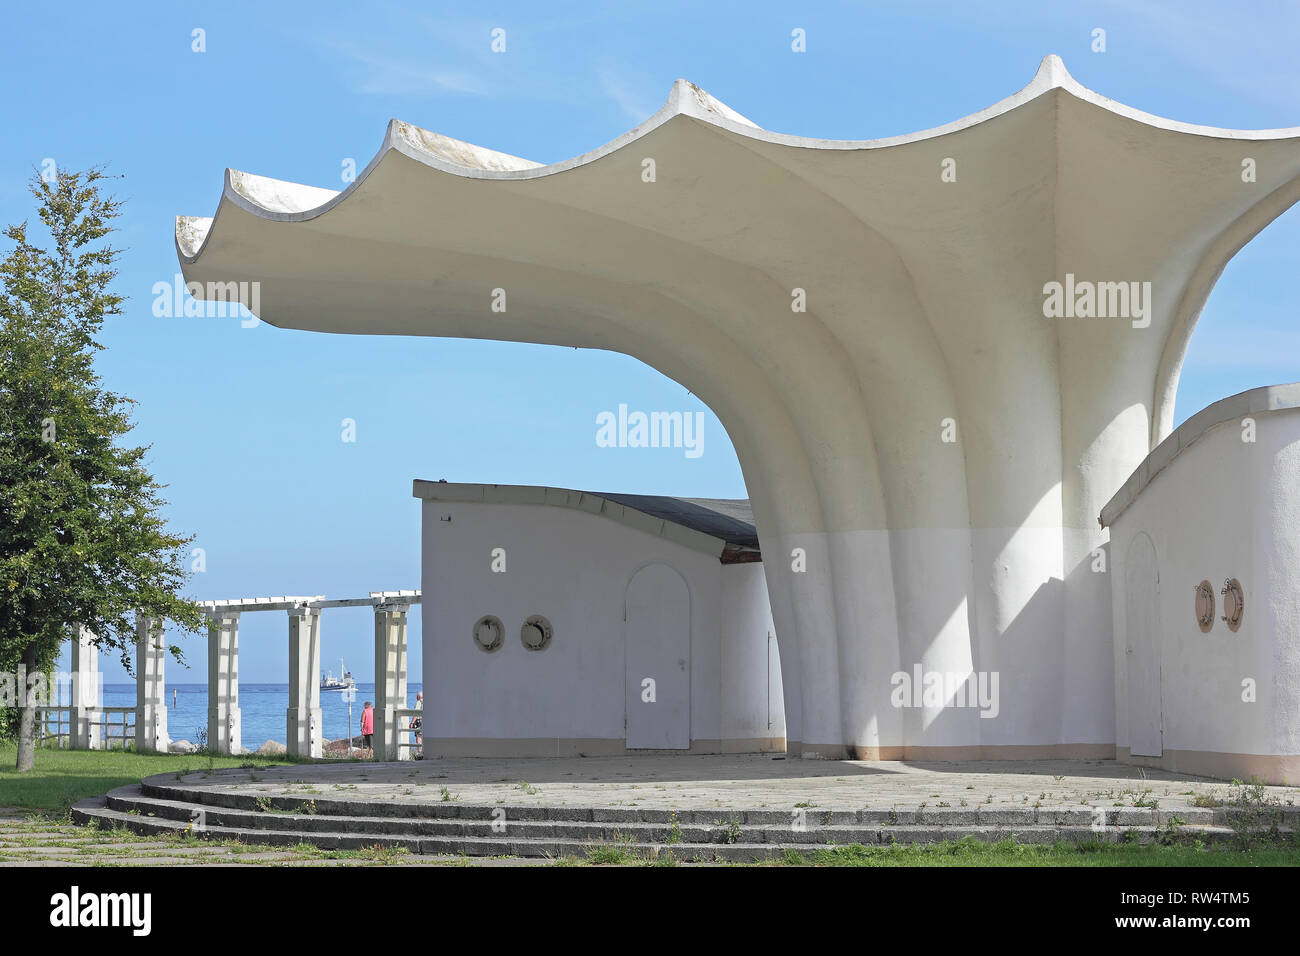 Bandstand in form of a shell in Sassnitz on the island of Rügen in Germany - Stock Image